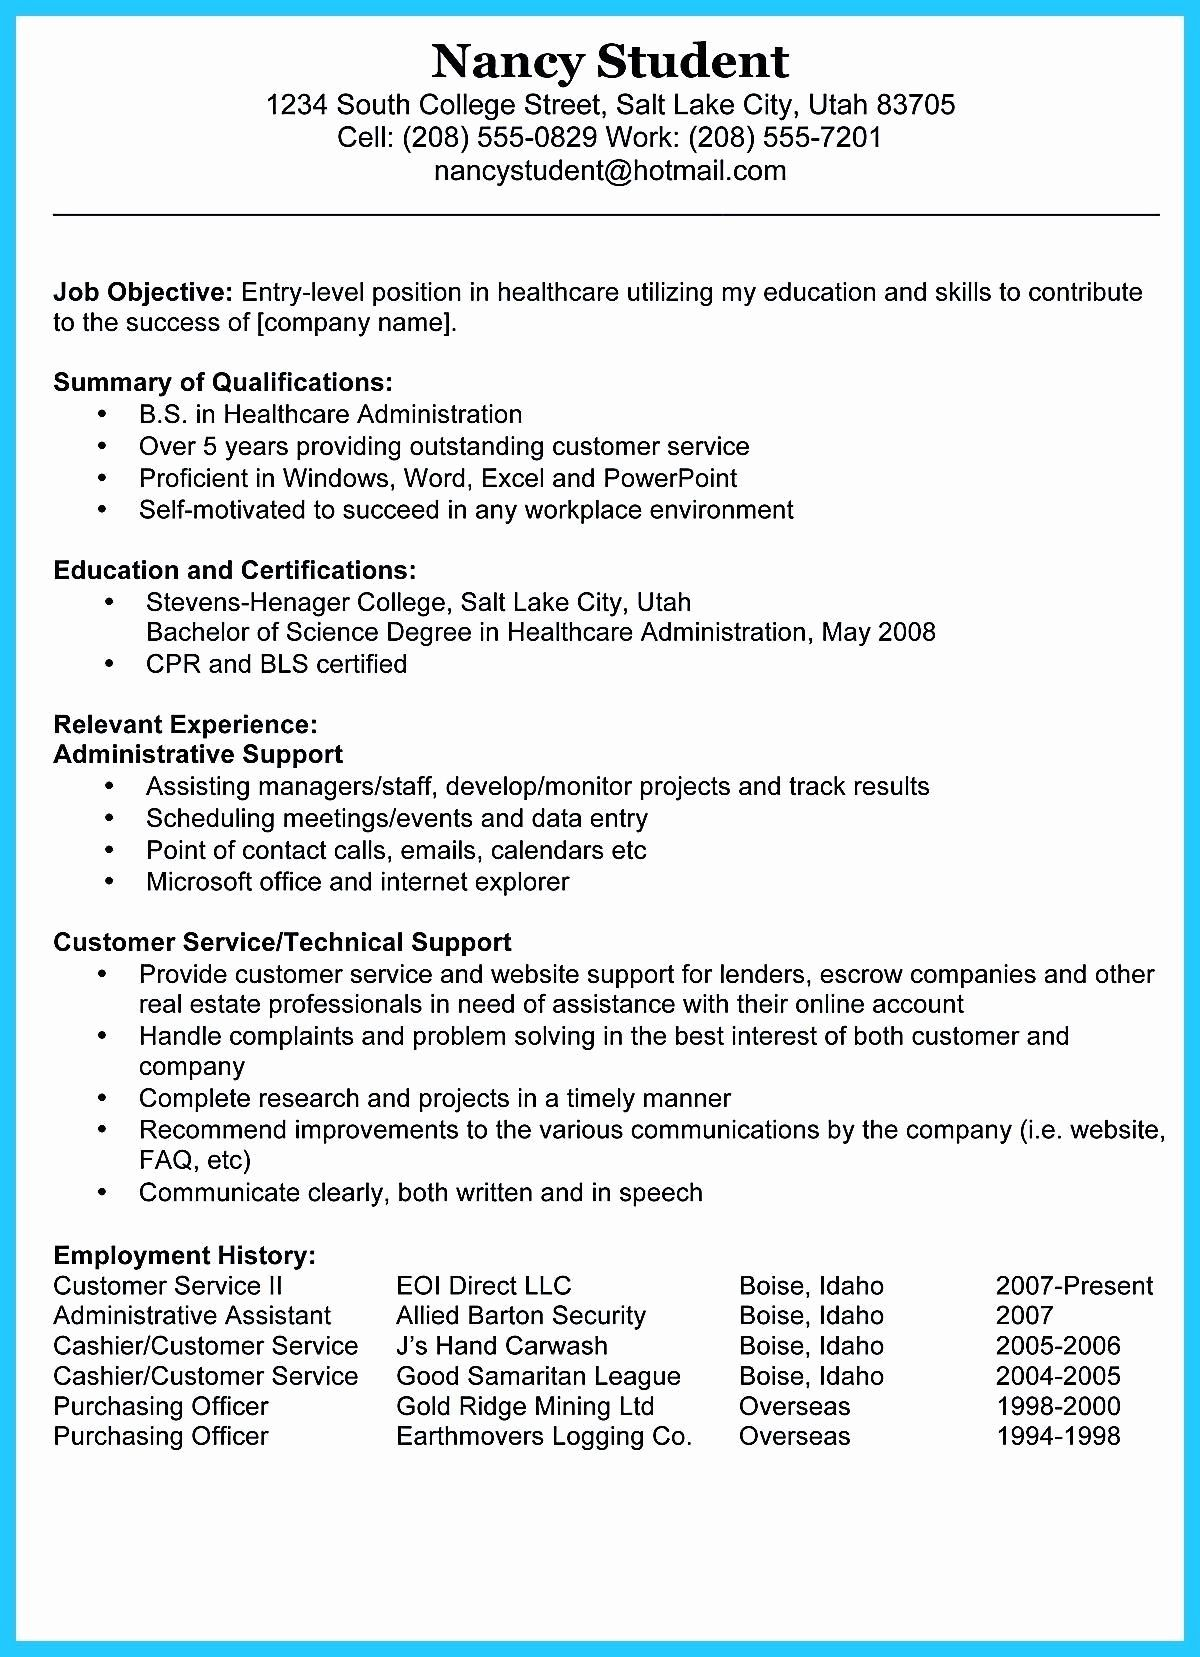 Direct Care Worker Resume Fresh 10 Experienced Warehouse Worker Resume Sample Resume Templates Resume Objective Examples Resume Template Examples